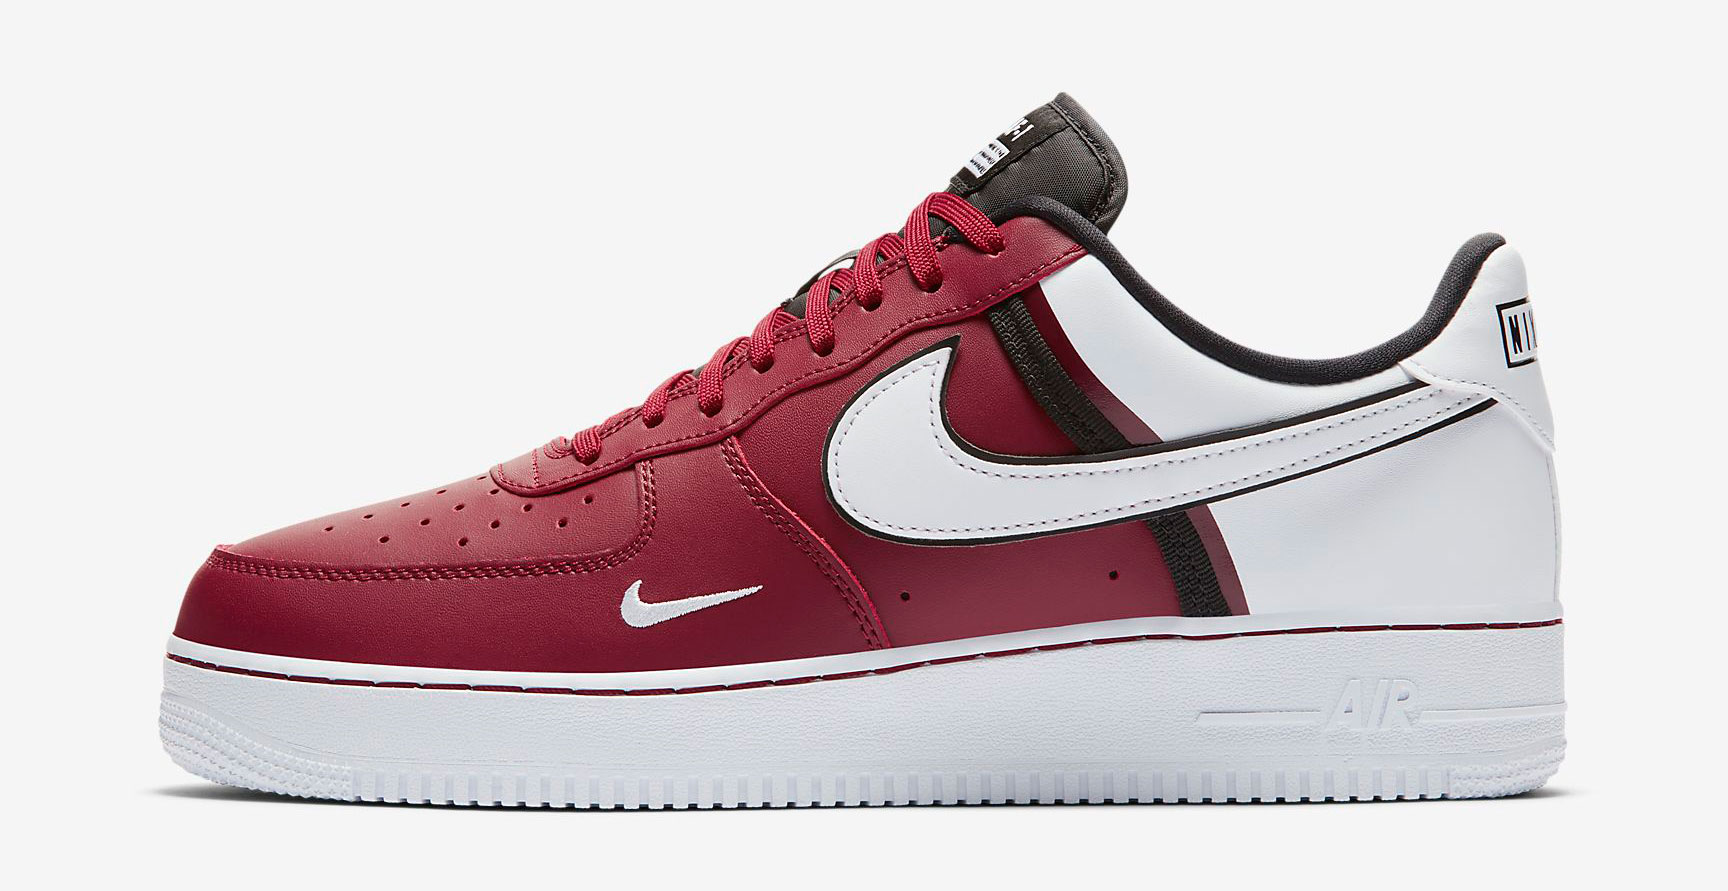 nike-air-force-1-team-red-white-black-release-date